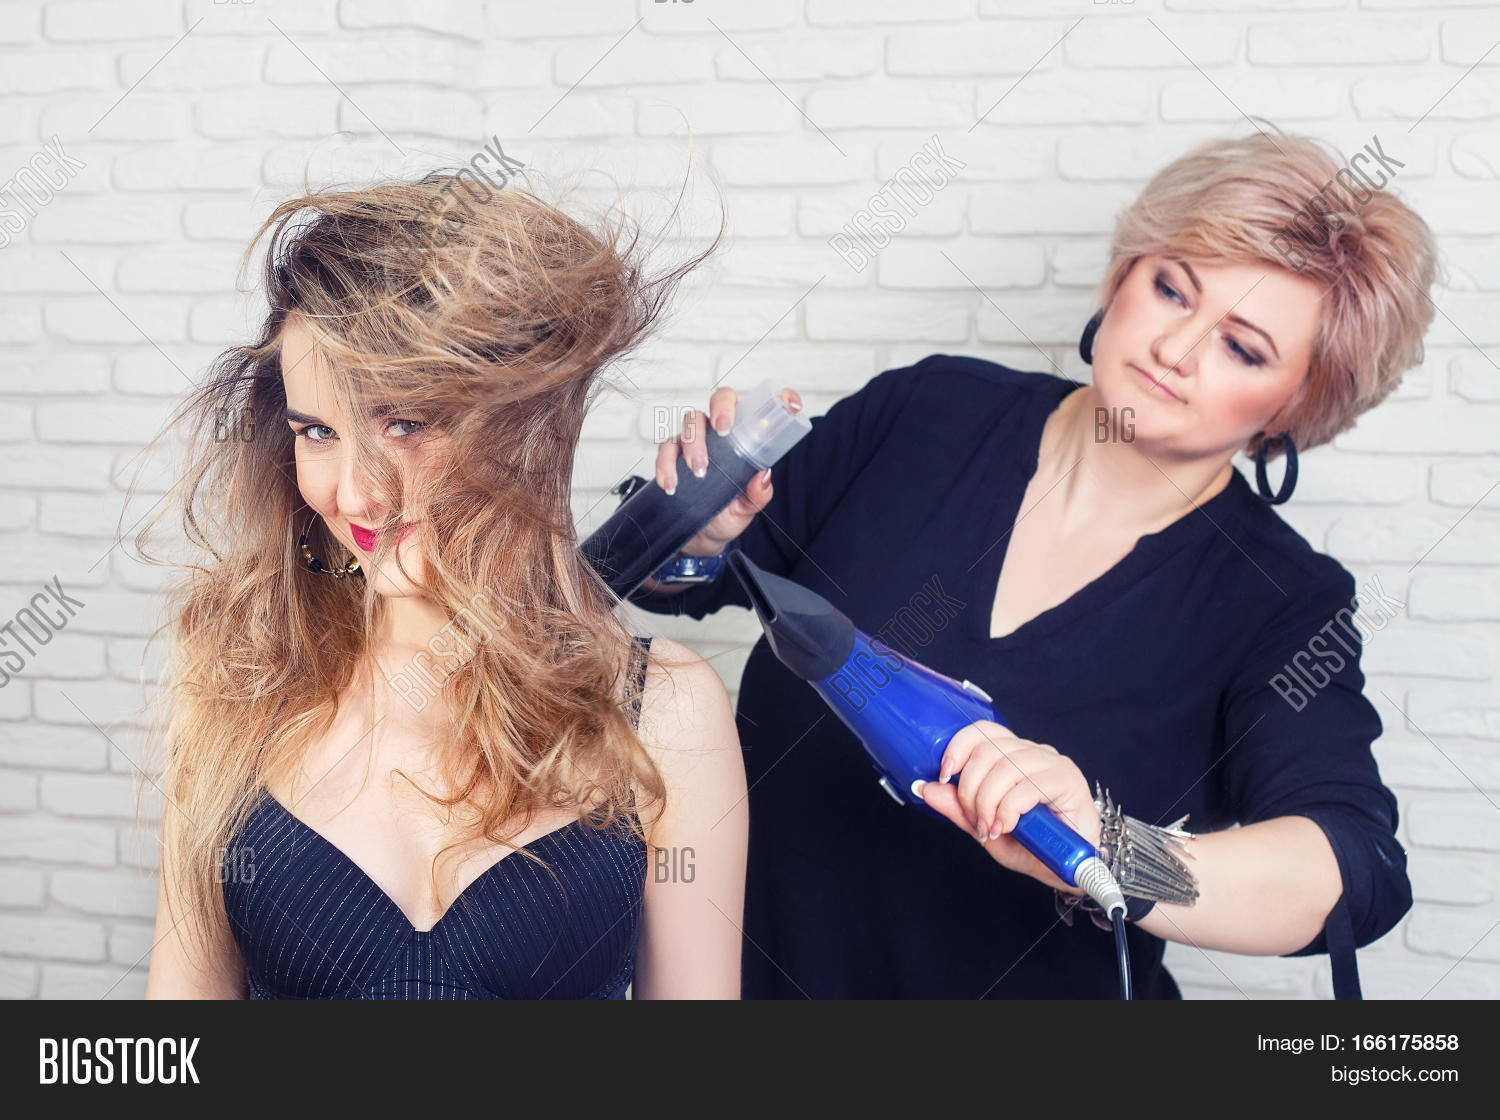 Hairdresser Drying Woman S Hair After Giving A New Haircut Portrait Of Hy At